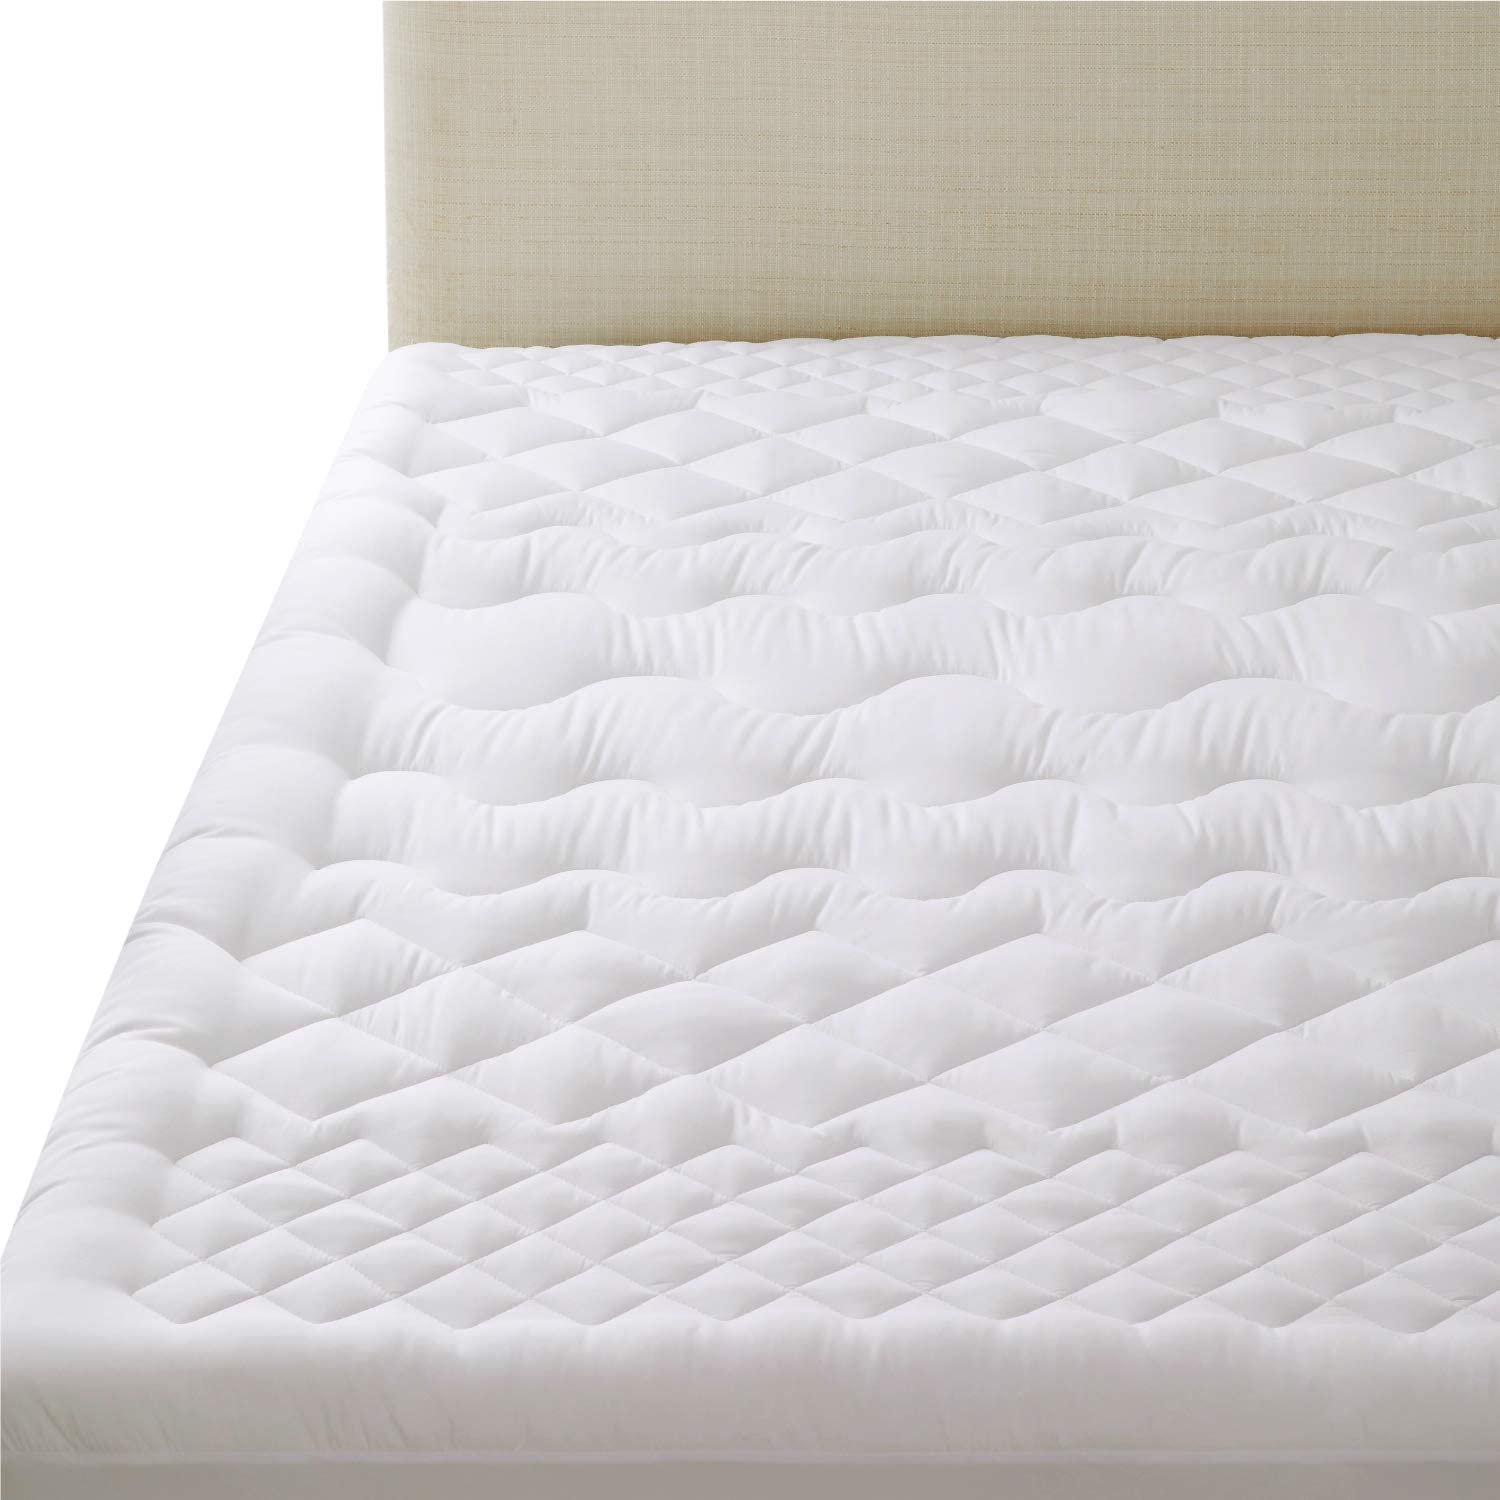 Bedsure Quilted Mattress Pad King - Pillow Top Mattress Cover - Fitted Mattress Topper (up to 18 inches Deep Pocket) - Overfilled, Soft, Breathable, Washable, White